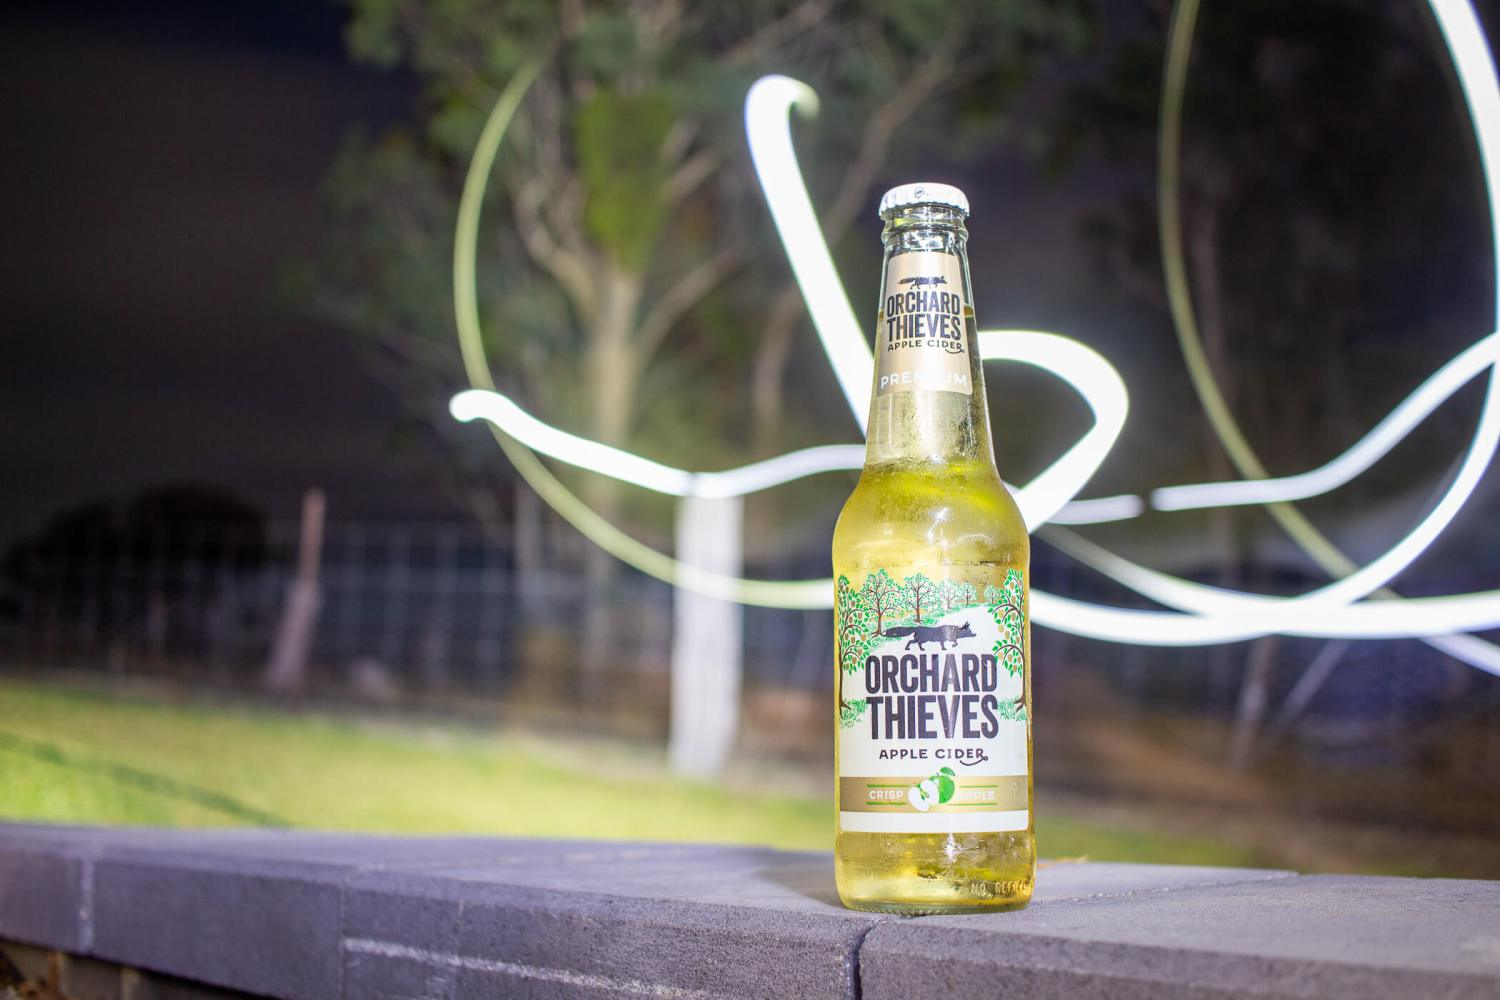 Orchard Thieves cider